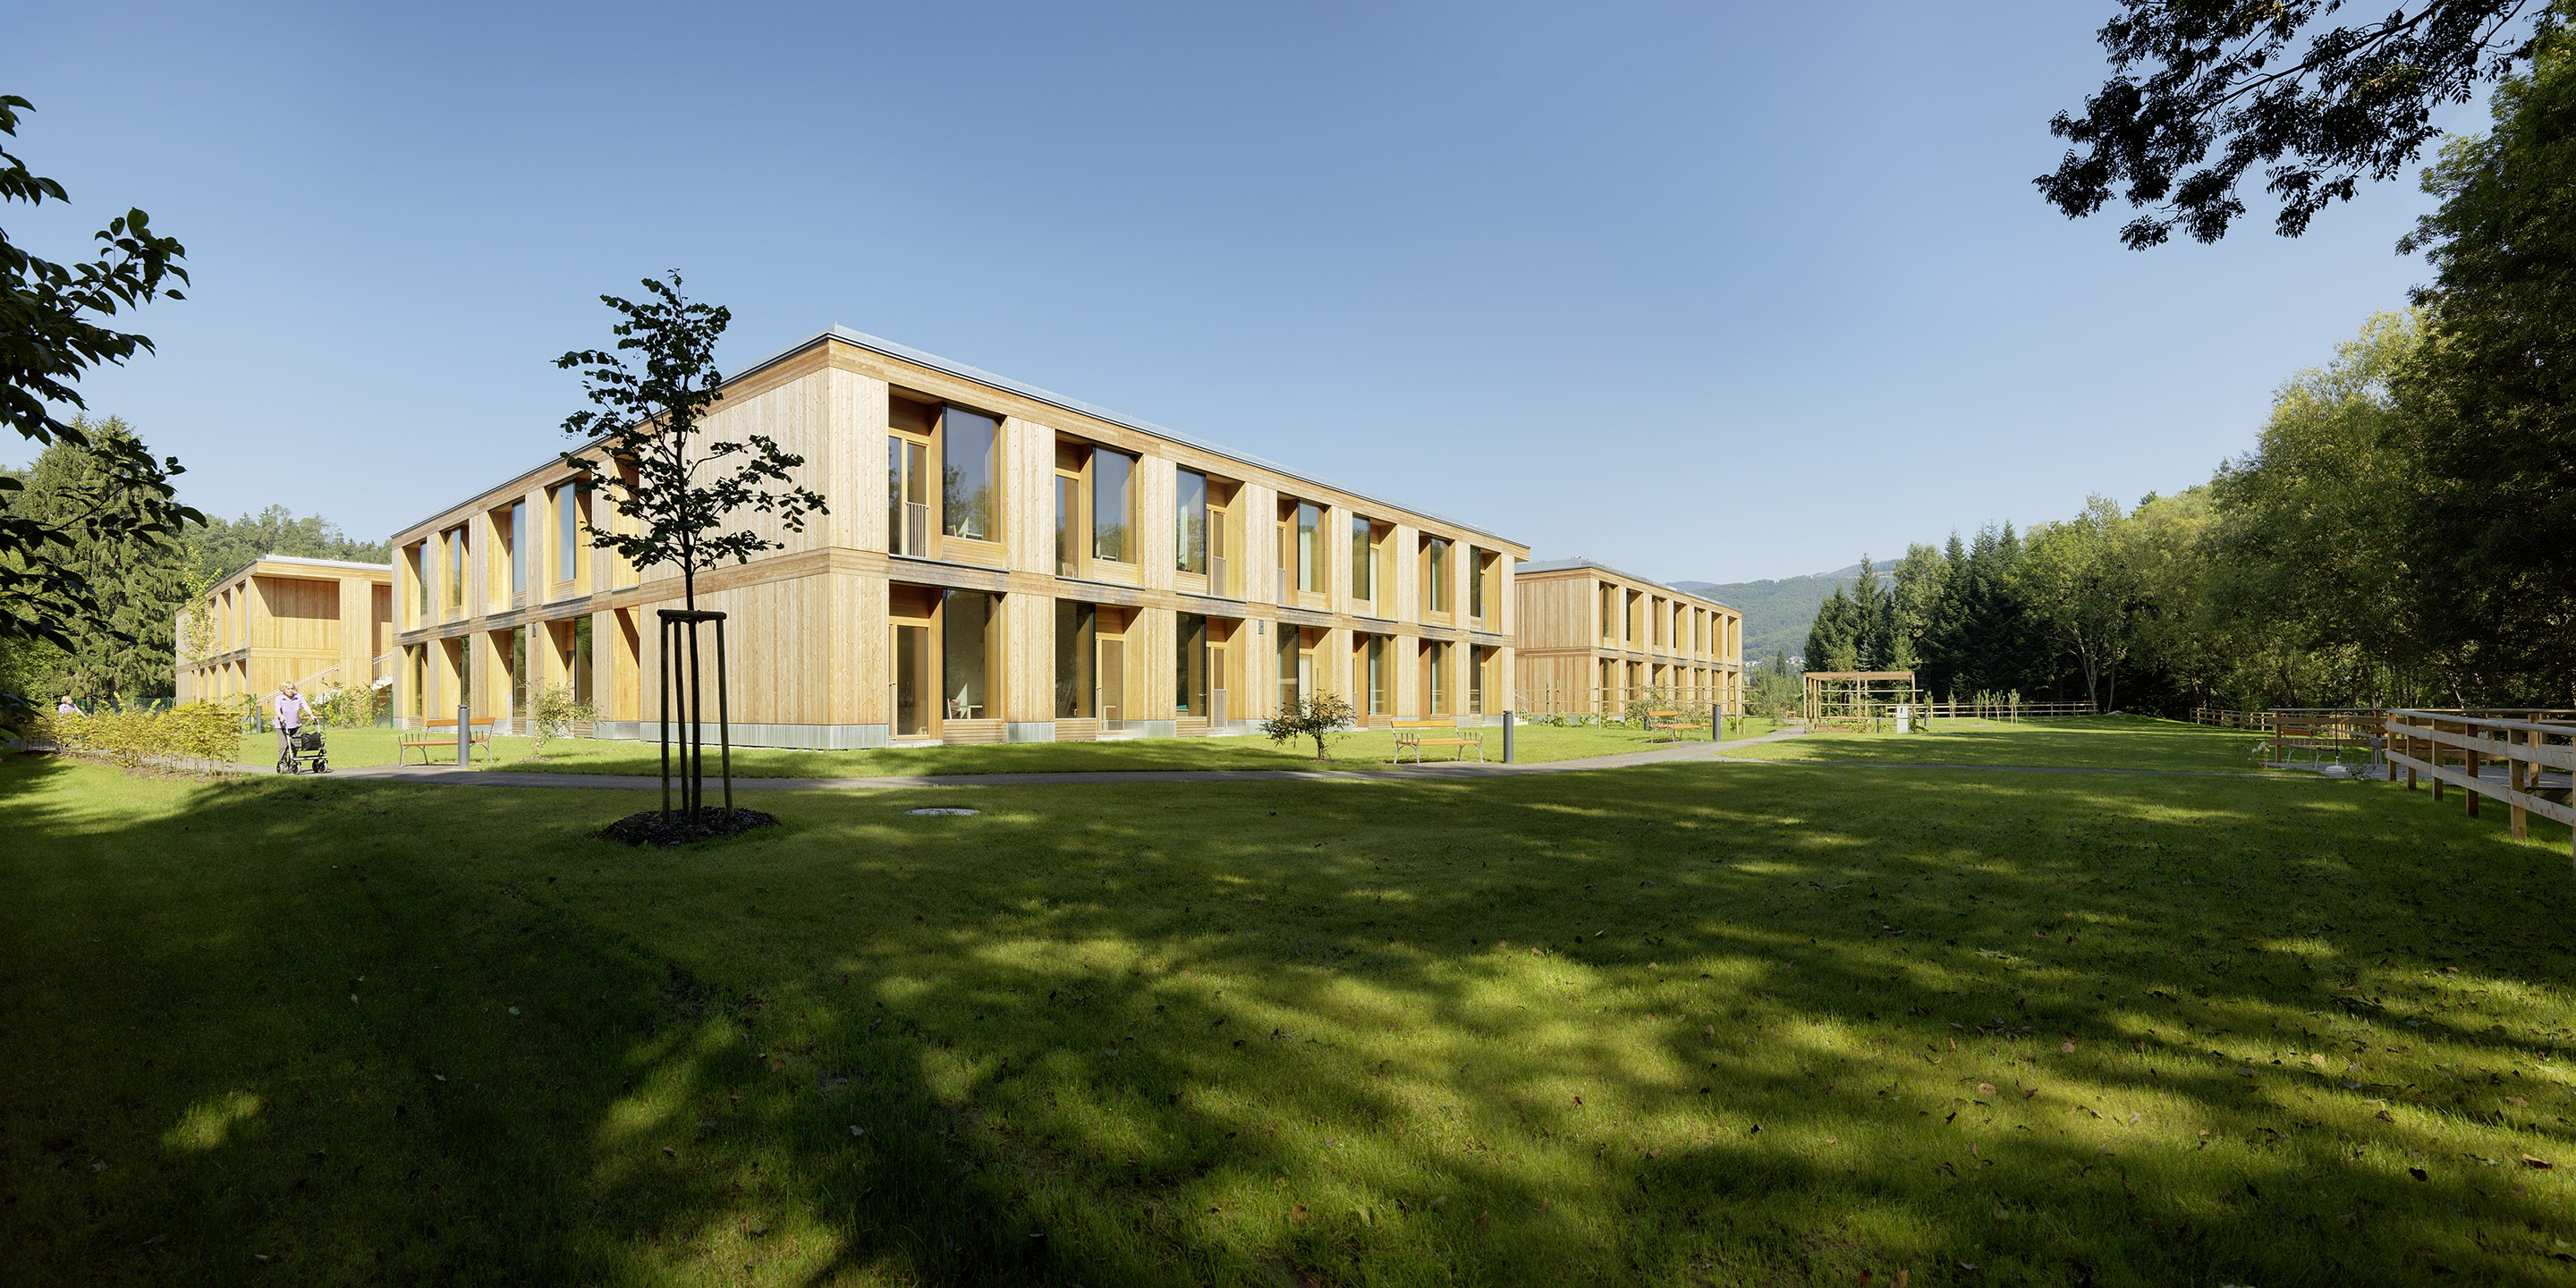 Residential care home Andritz